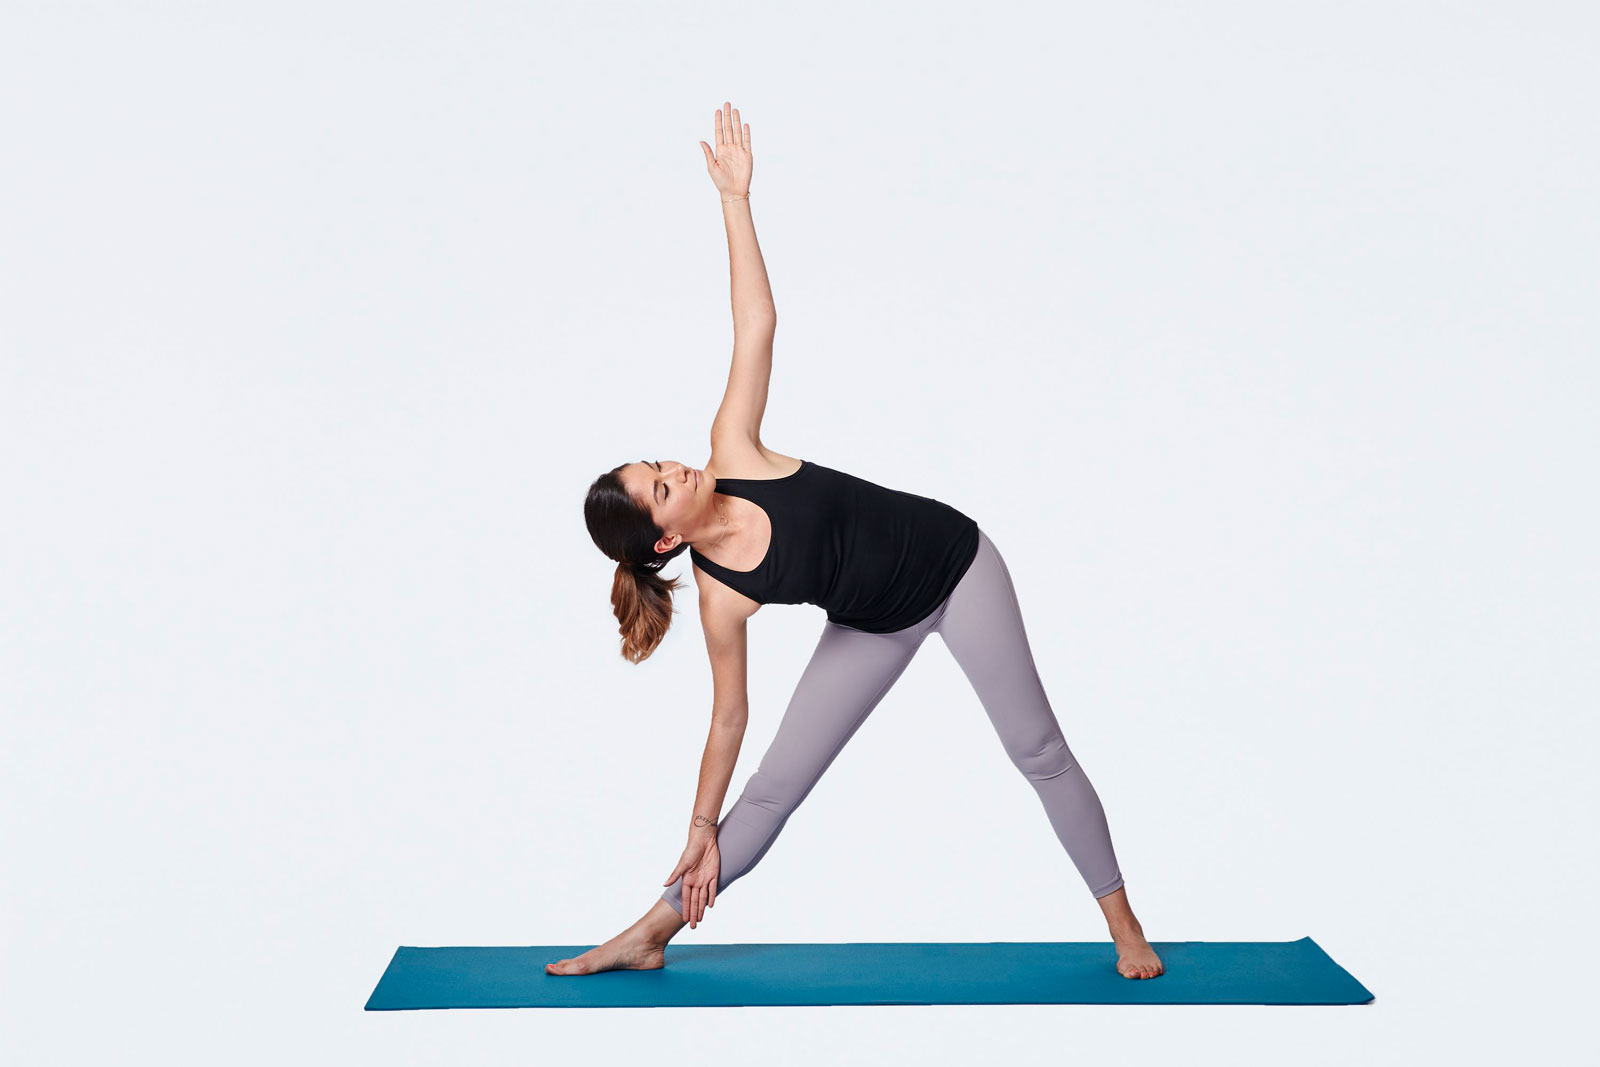 How To Master The 12 Best Hatha Yoga Poses For Beginners